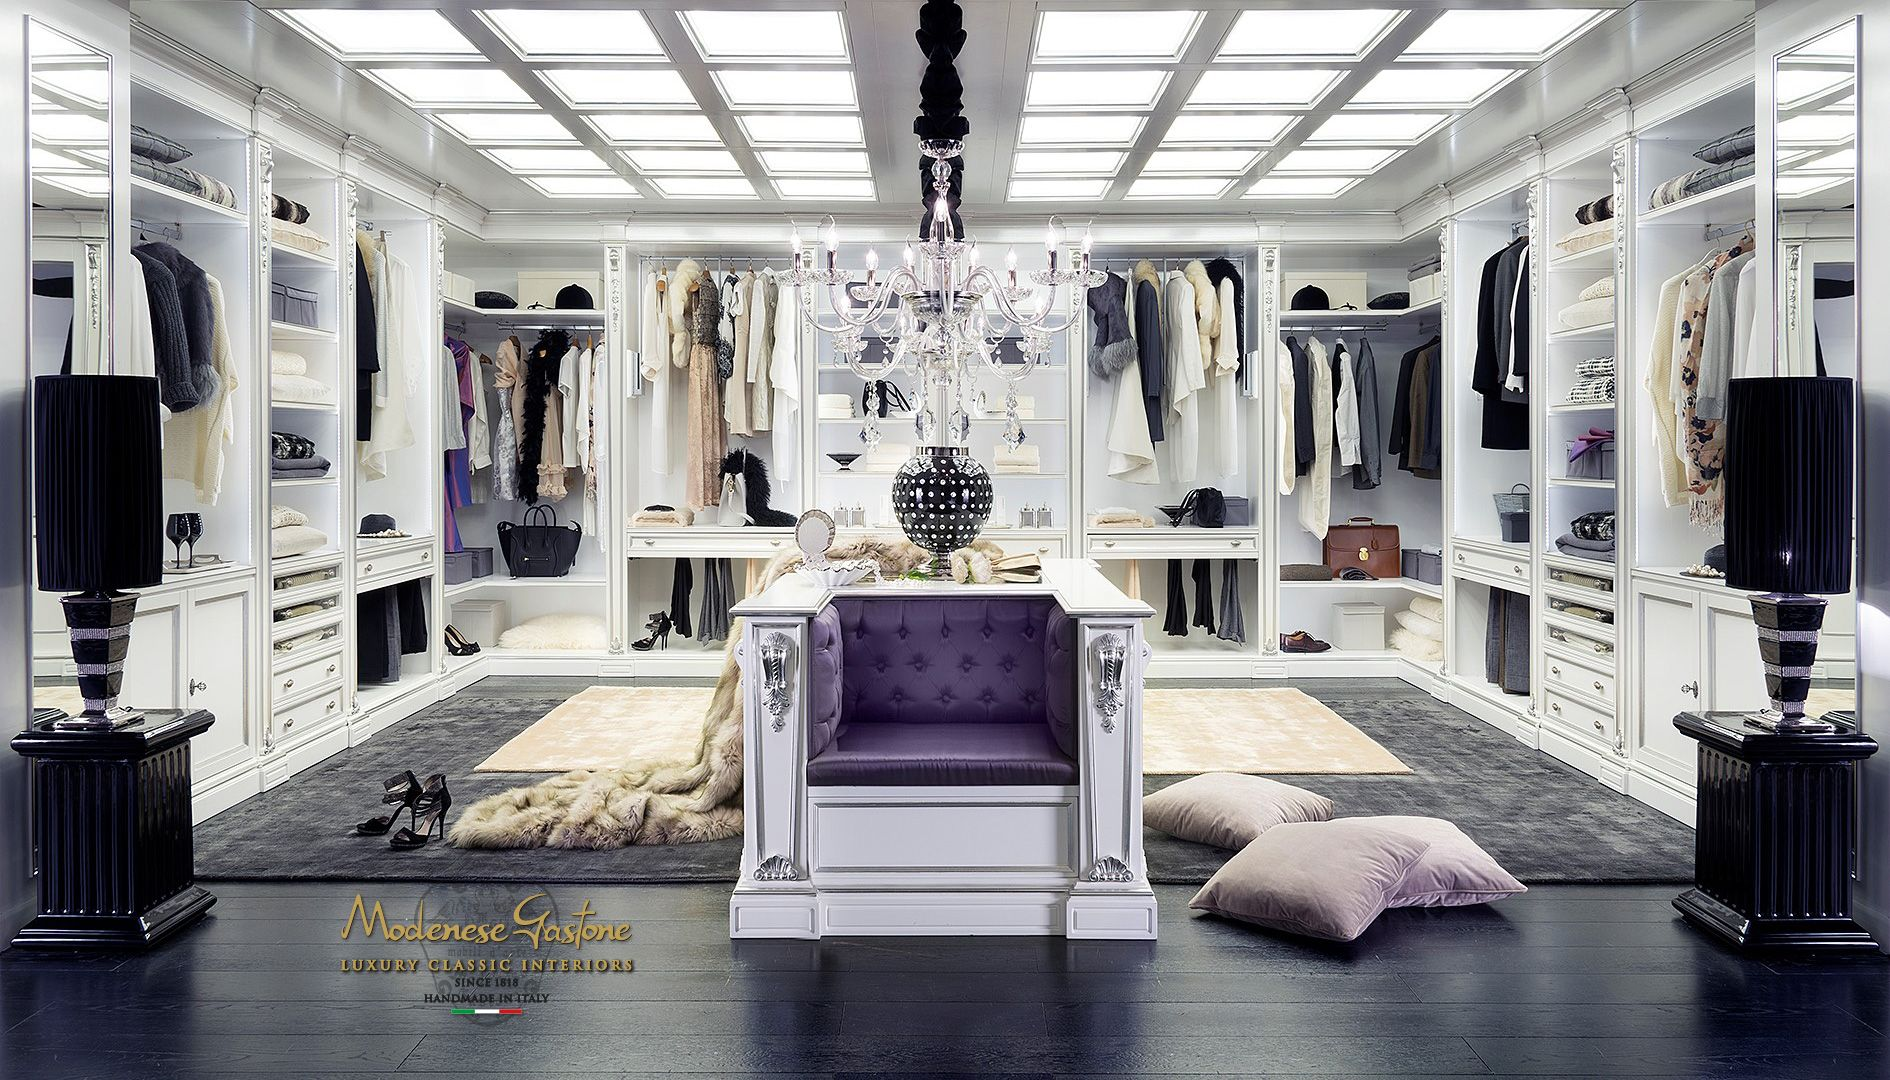 Our Luxury Italian Furniture Collection Contains Luxury Pieces Soft Lines With Palatial Des Dream Closet Design Walk In Closet Design Luxury Italian Furniture